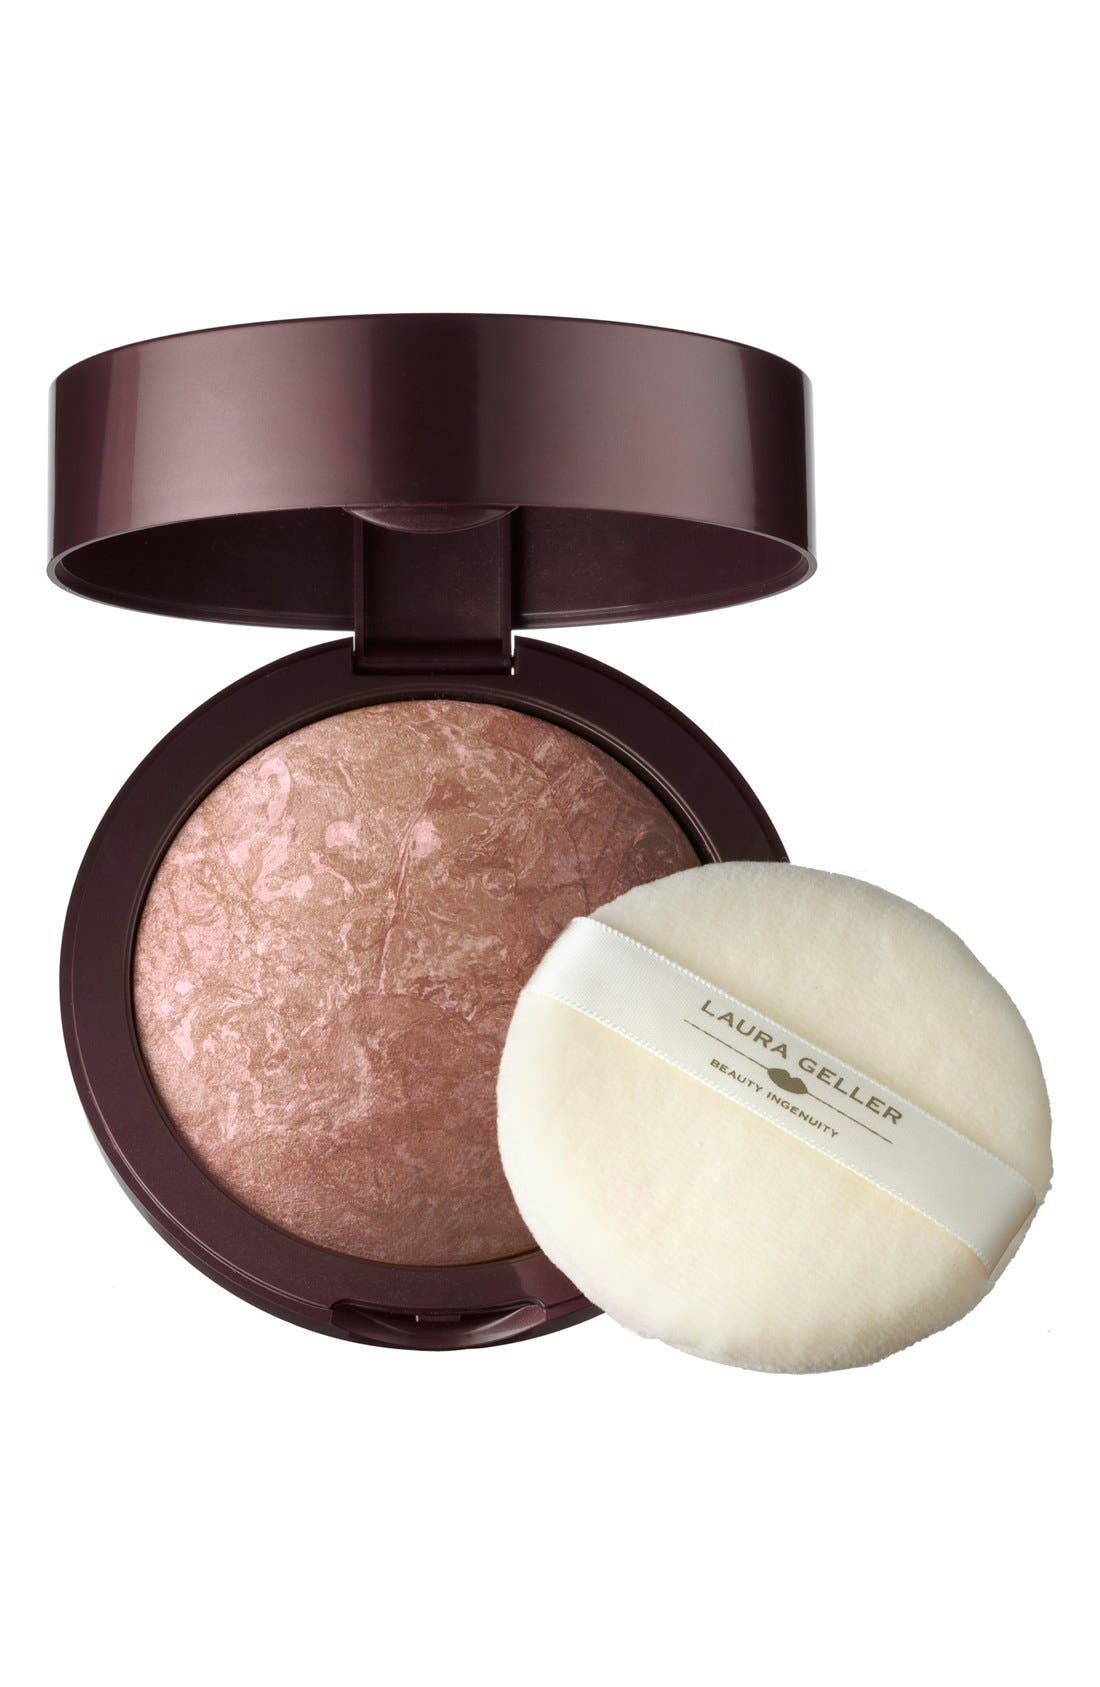 Laura Geller Beauty 'Baked Body Frosting - Hawaiian Glow' All Over Face & Body Glow